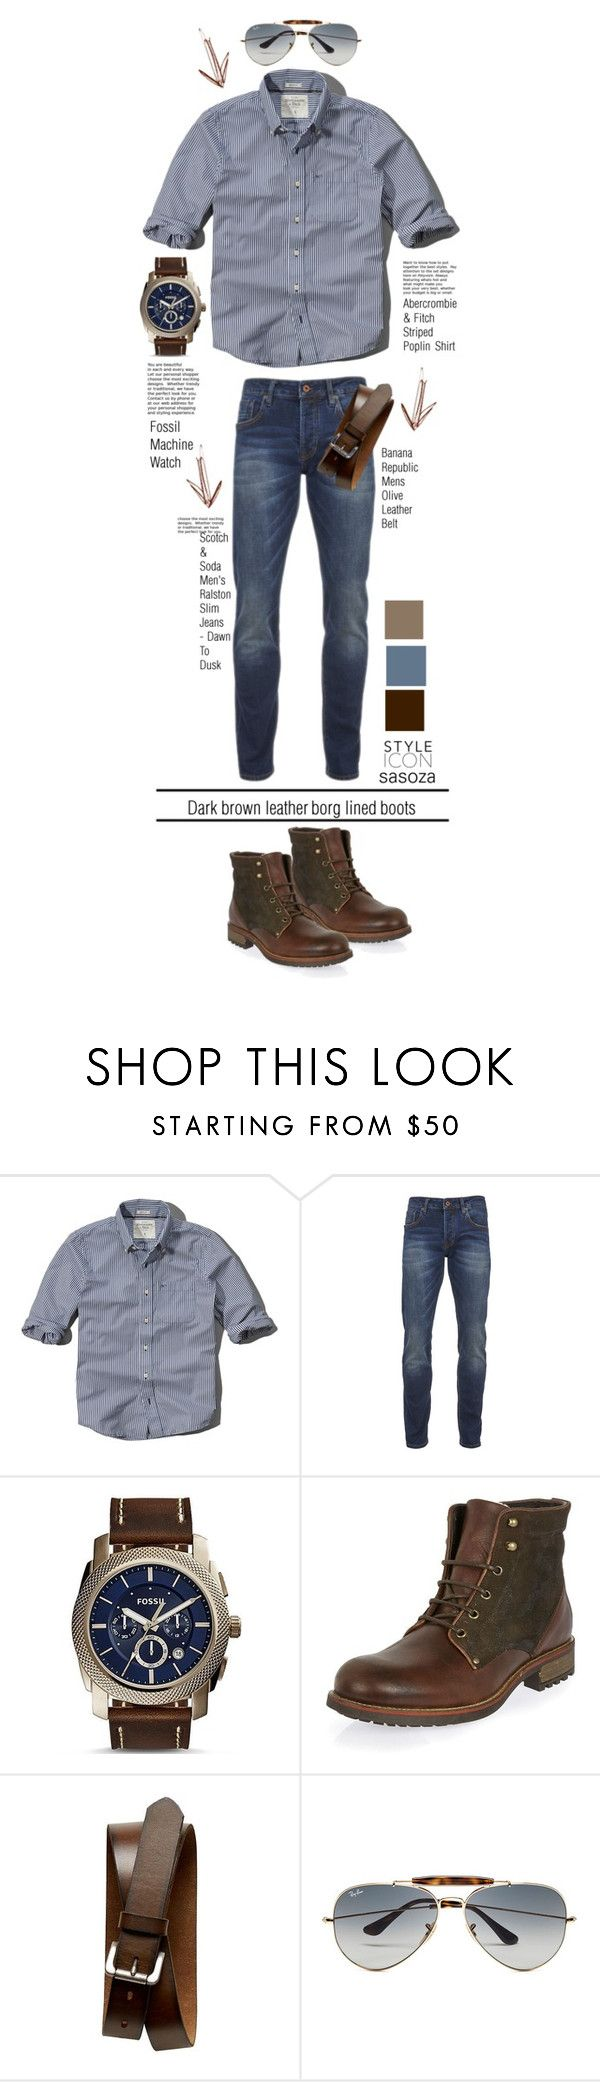 """""""men's wear by Sasoza"""" by sasooza ❤ liked on Polyvore featuring Abercrombie & Fitch, Scotch & Soda, FOSSIL, Banana Republic, Ray-Ban, StreetStyle, outfit, denim, trend and menswear"""